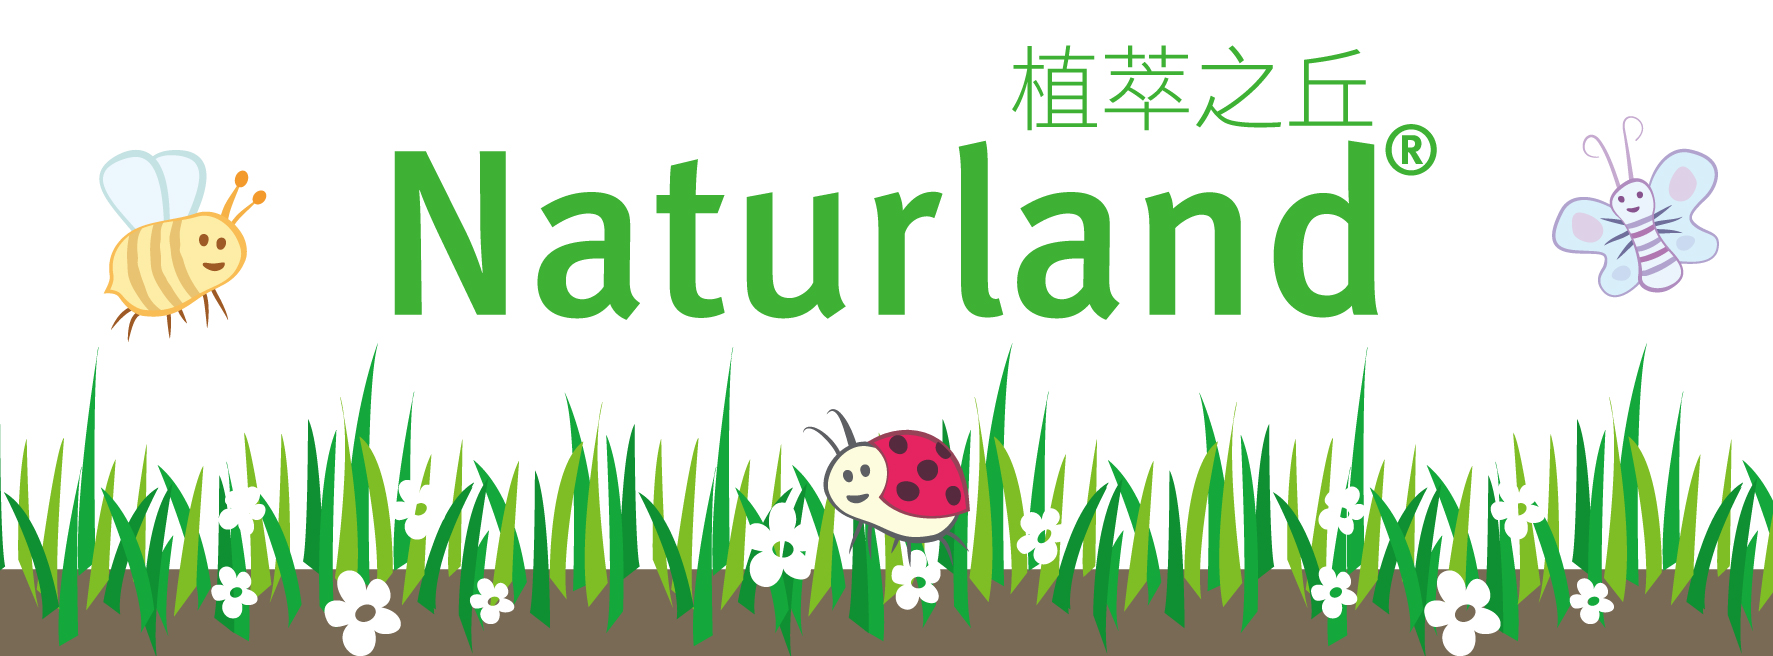 Naturland_FB_Cover-01.jpg (476 KB)